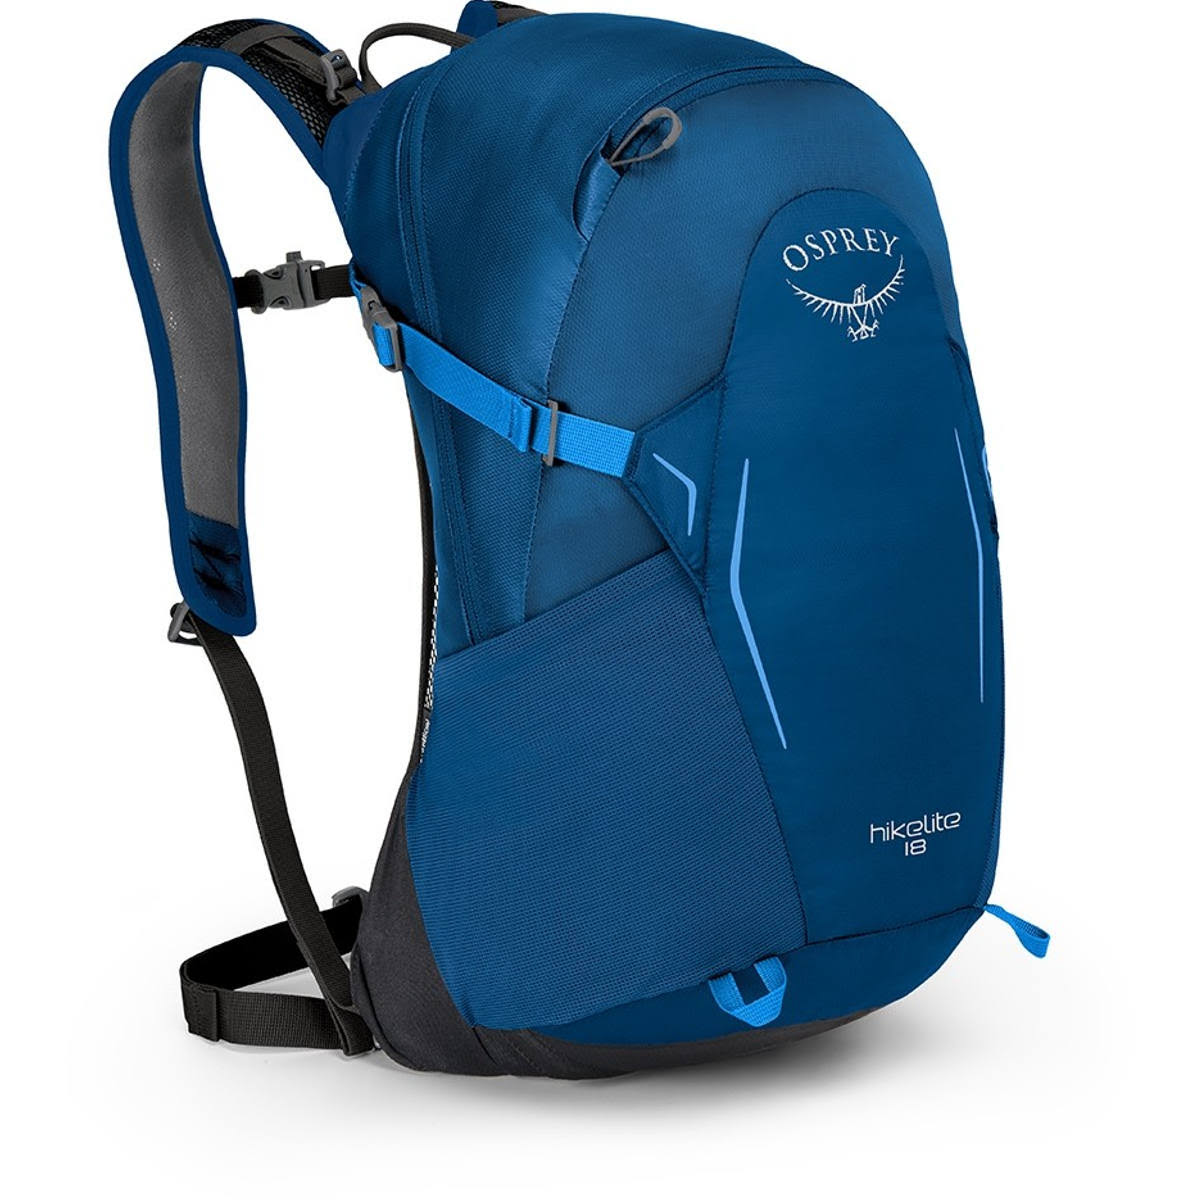 Osprey Hikelite 18 Backpack - Bacca Blue